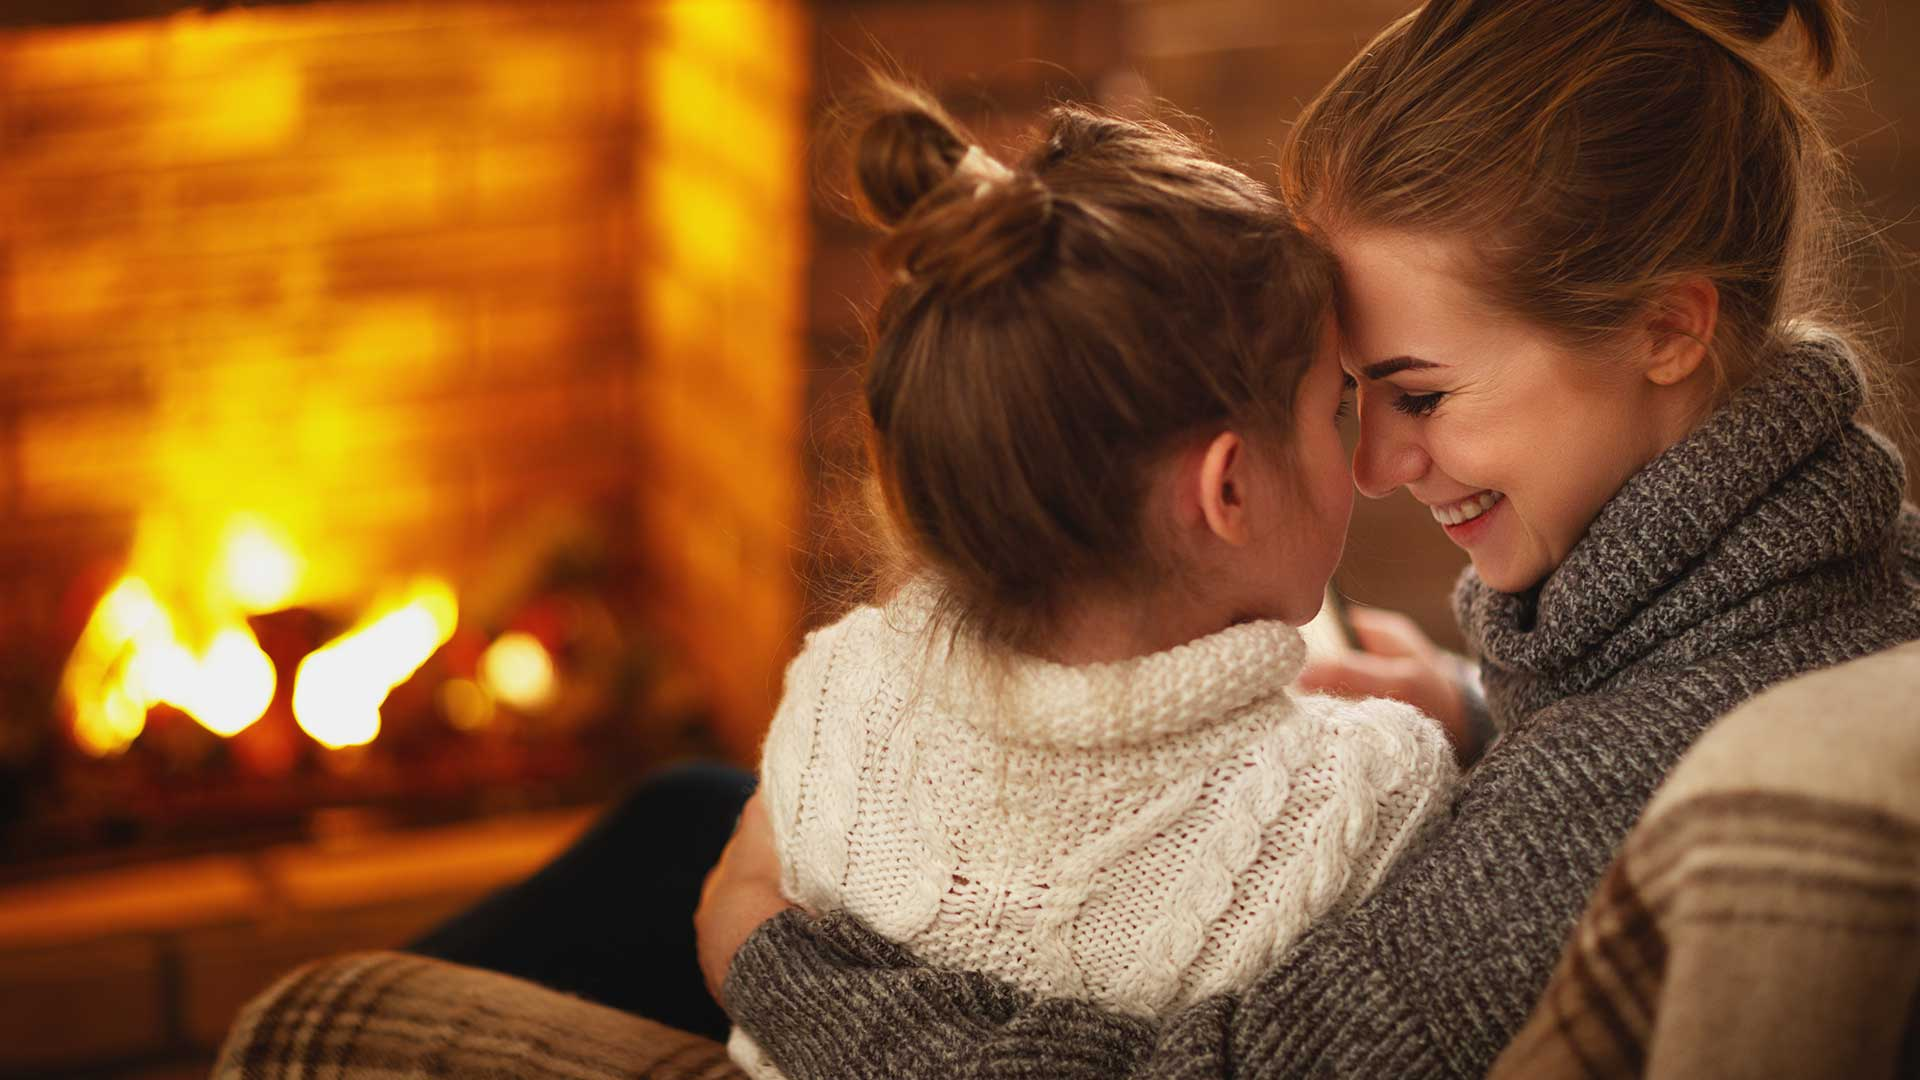 Mom and daughter cuddling on couch in front of cozy fire.